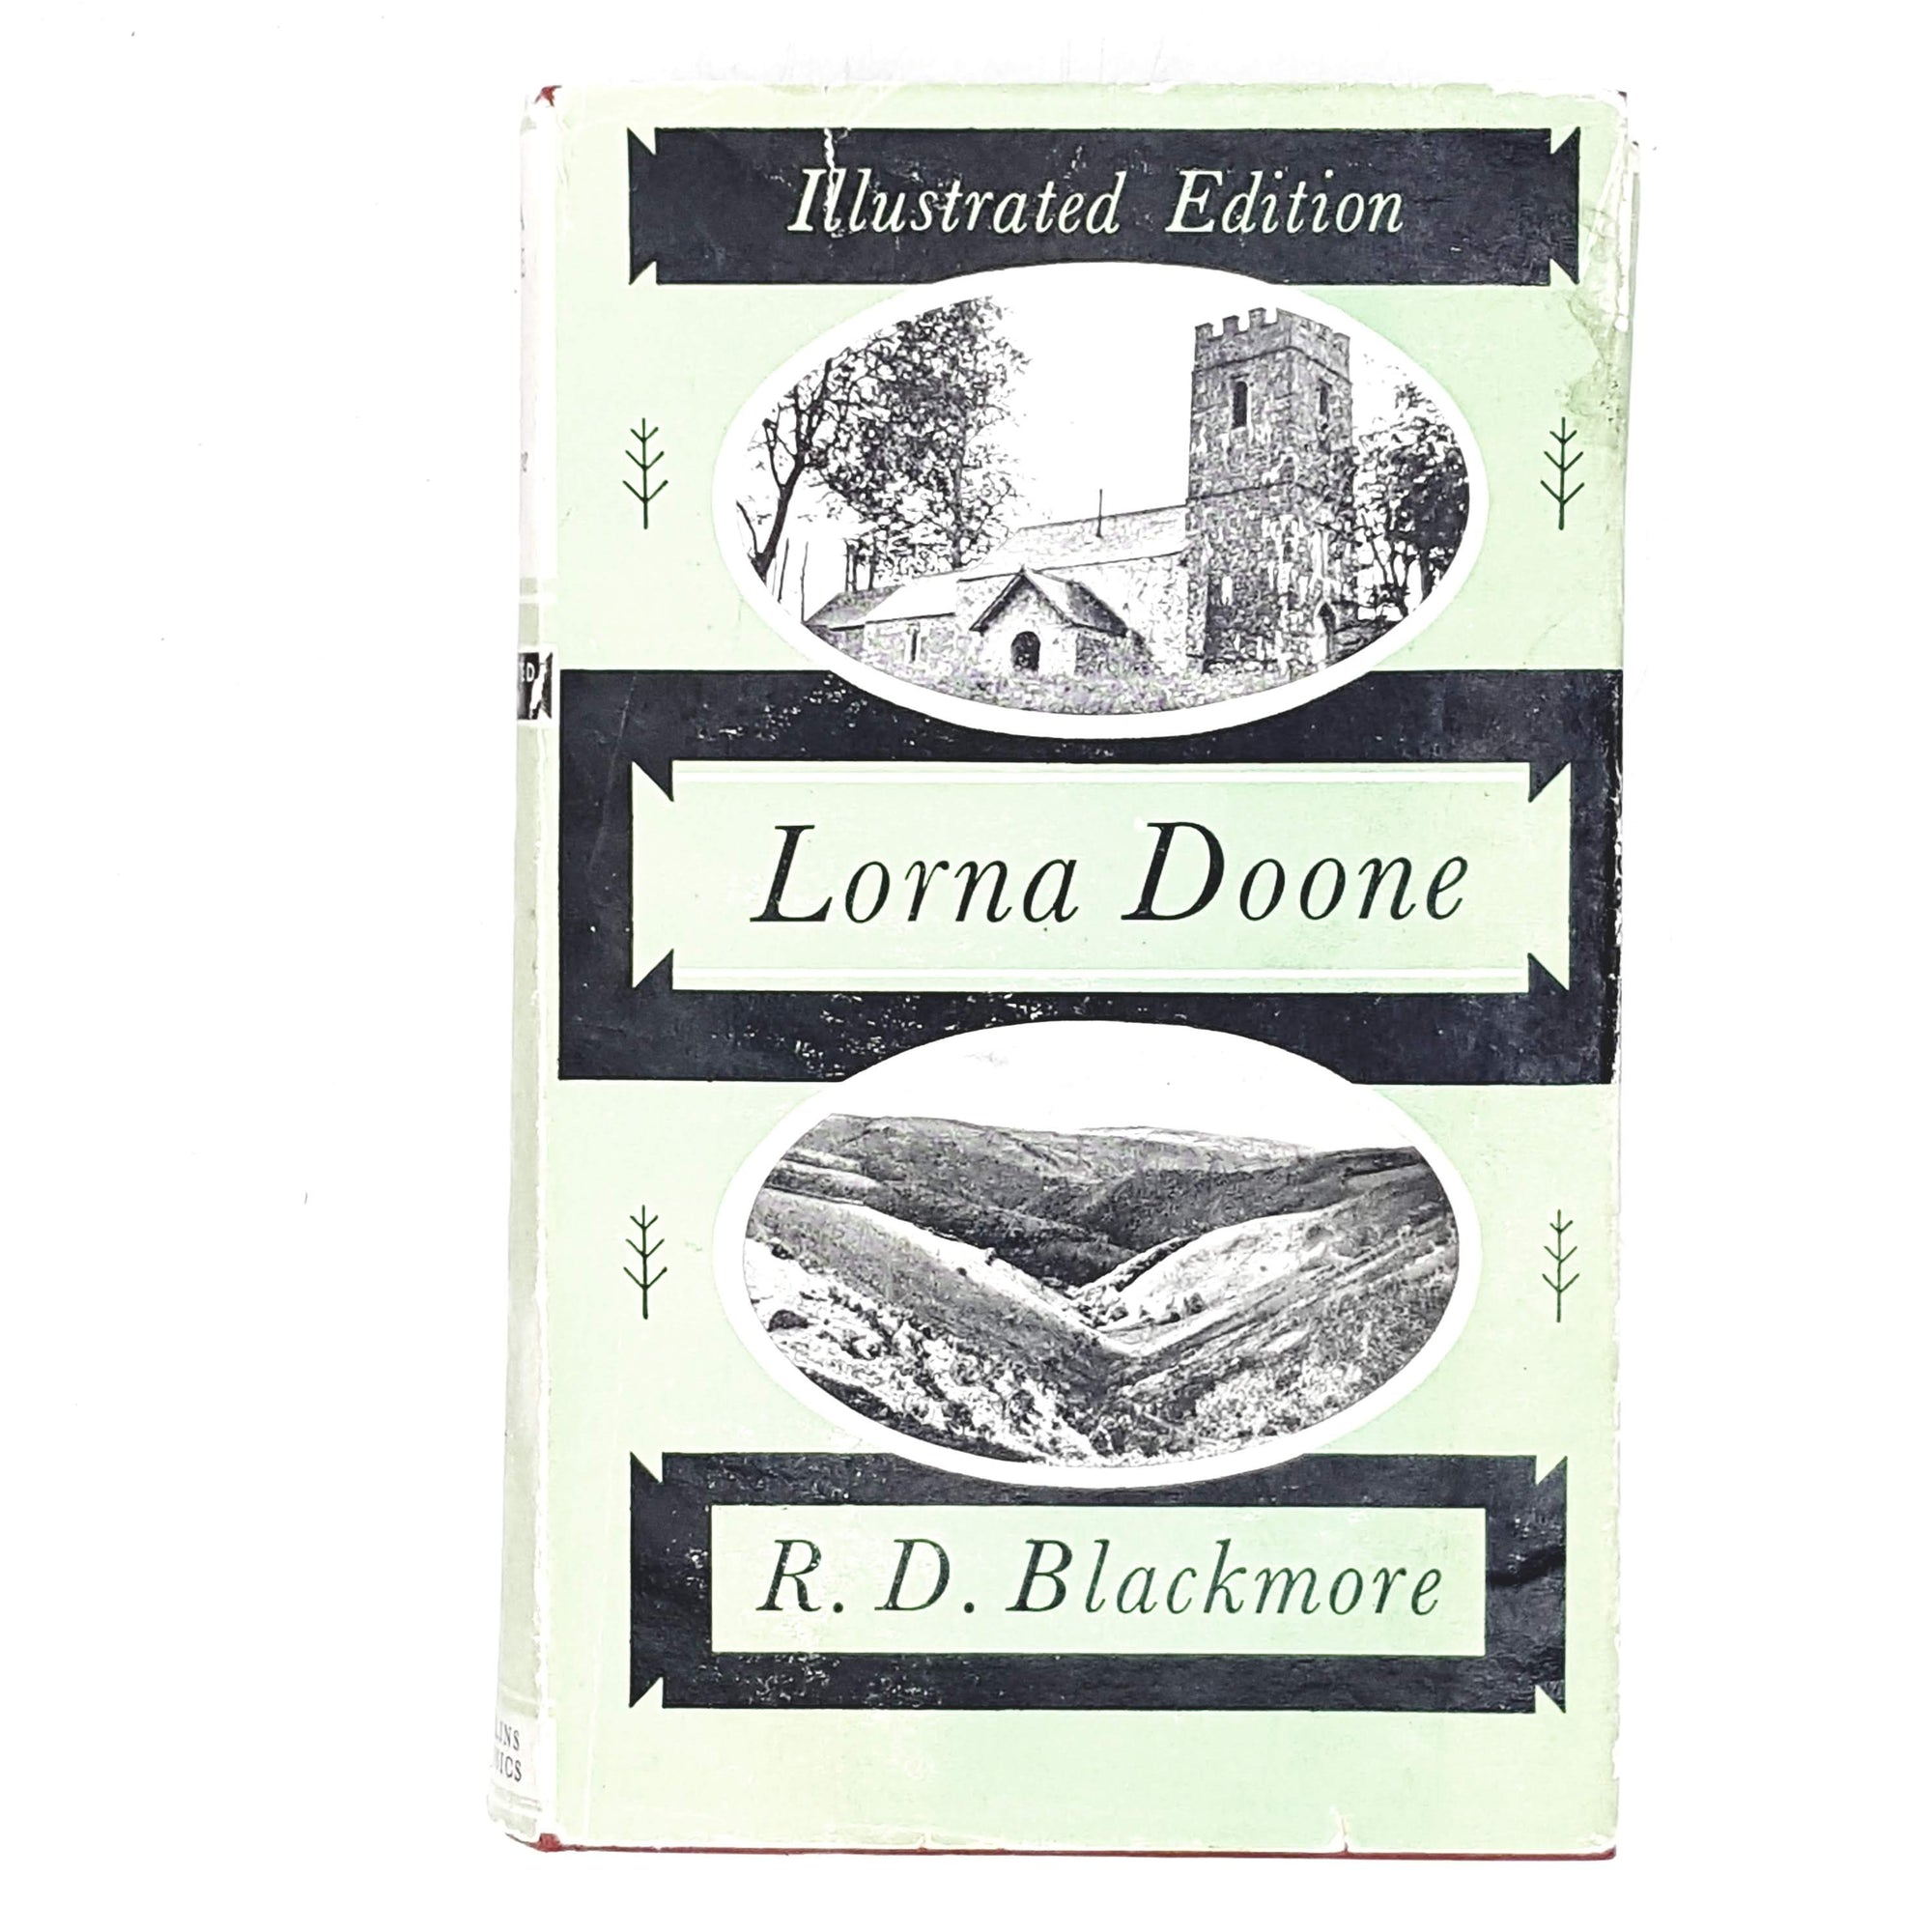 Lorna Doone by R.D Blackmore c1960